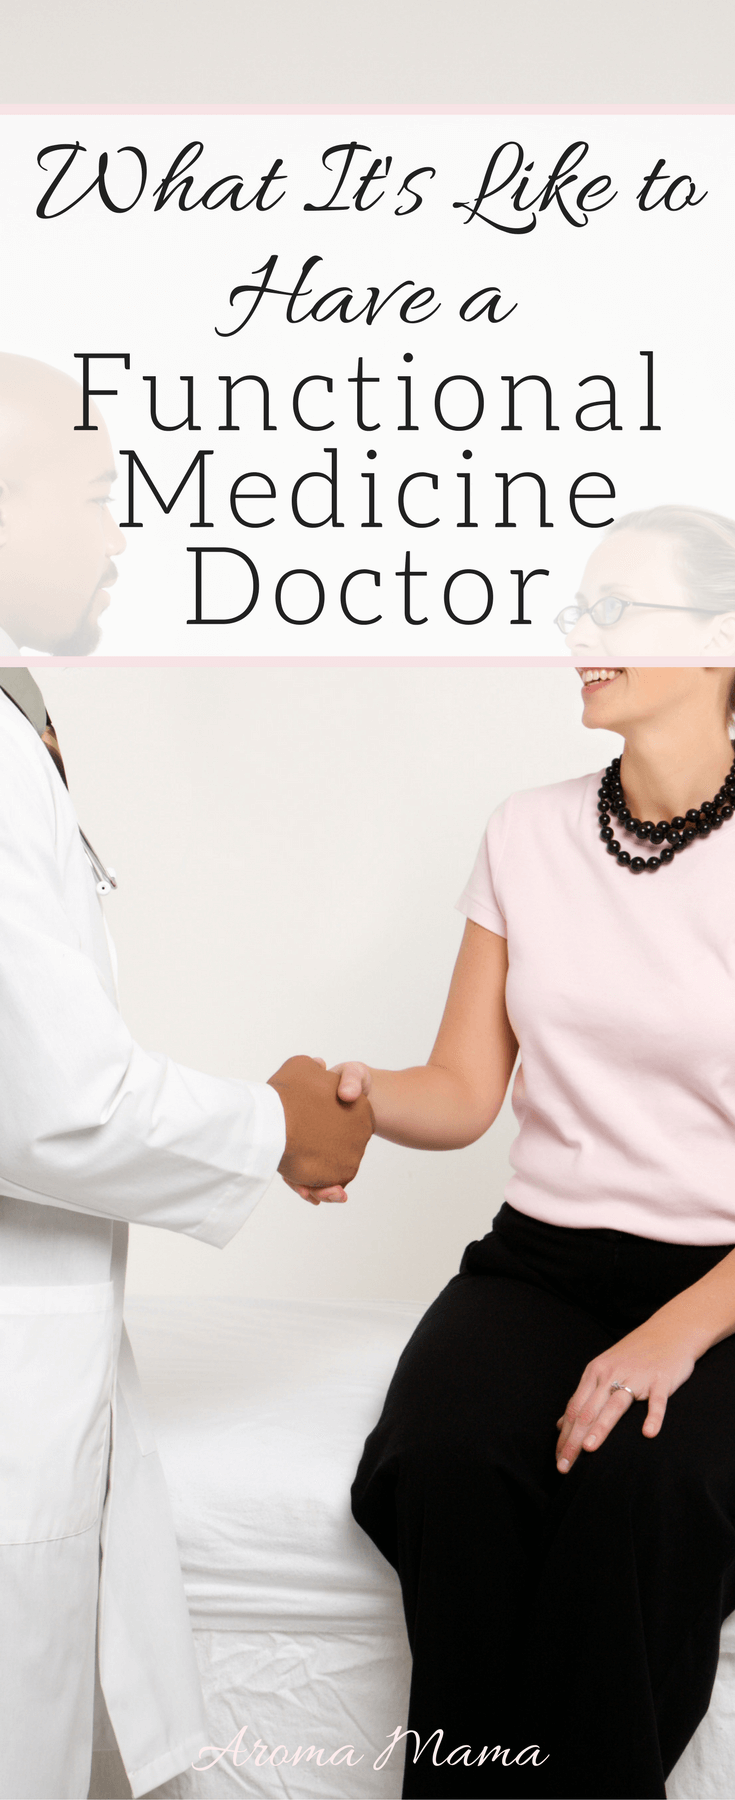 In this post, I will share with you what it's like to have a functional medicine doctor, but first is the story of how I found out about this model of healthcare. #functional medicine #healthandwellness #optimalhealth #healthyliving